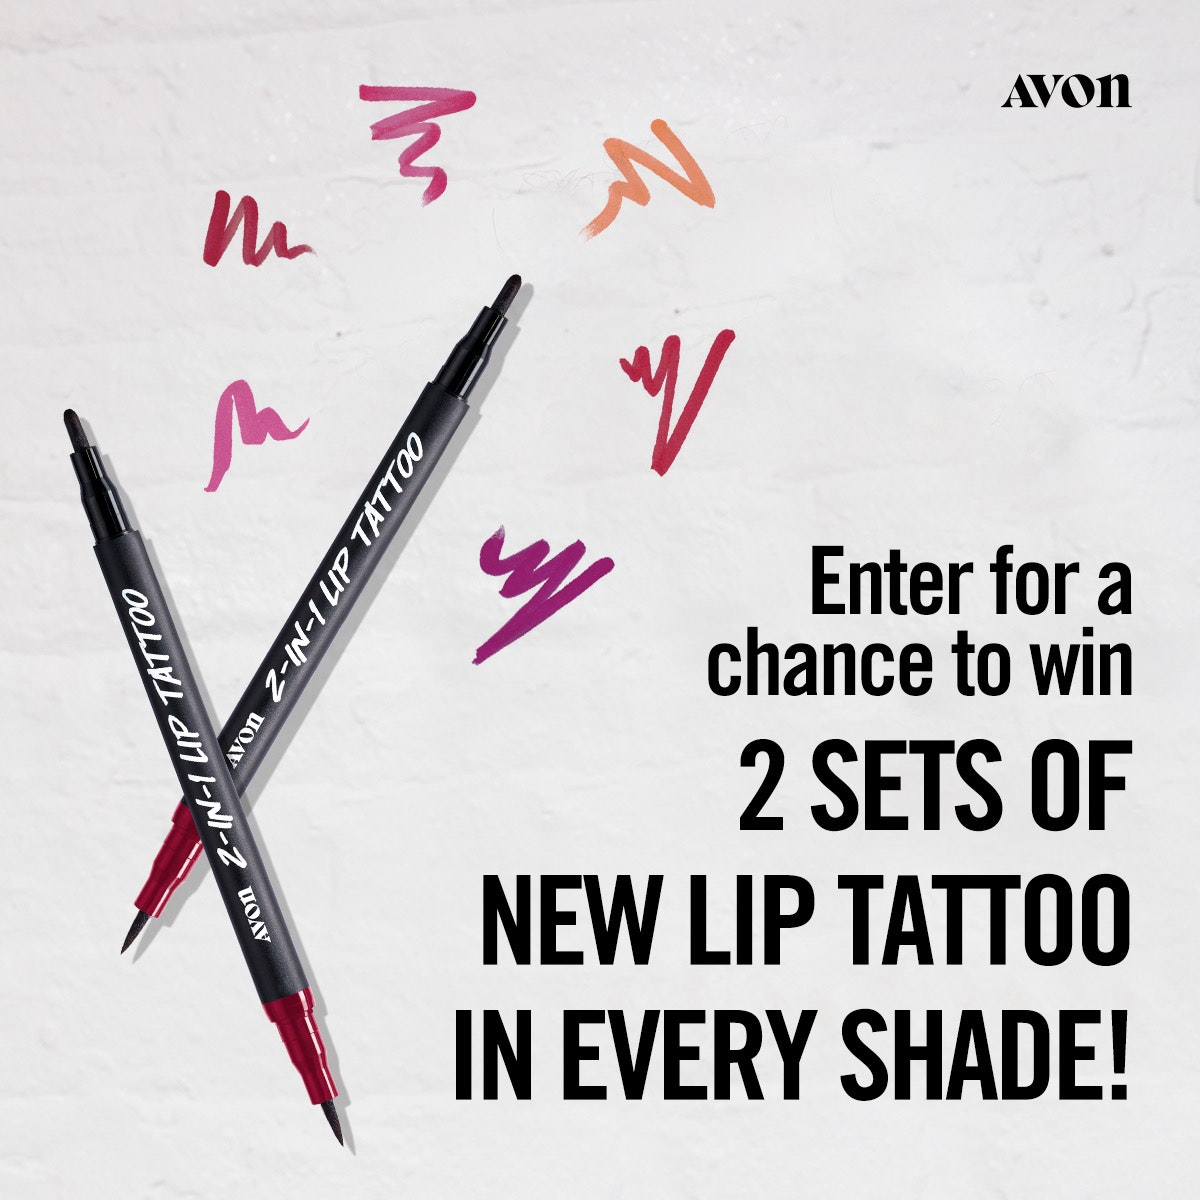 Avon Sweepstakes!  Win 2 sets of the new 2-In-1 Lip Tattoo in every shade!